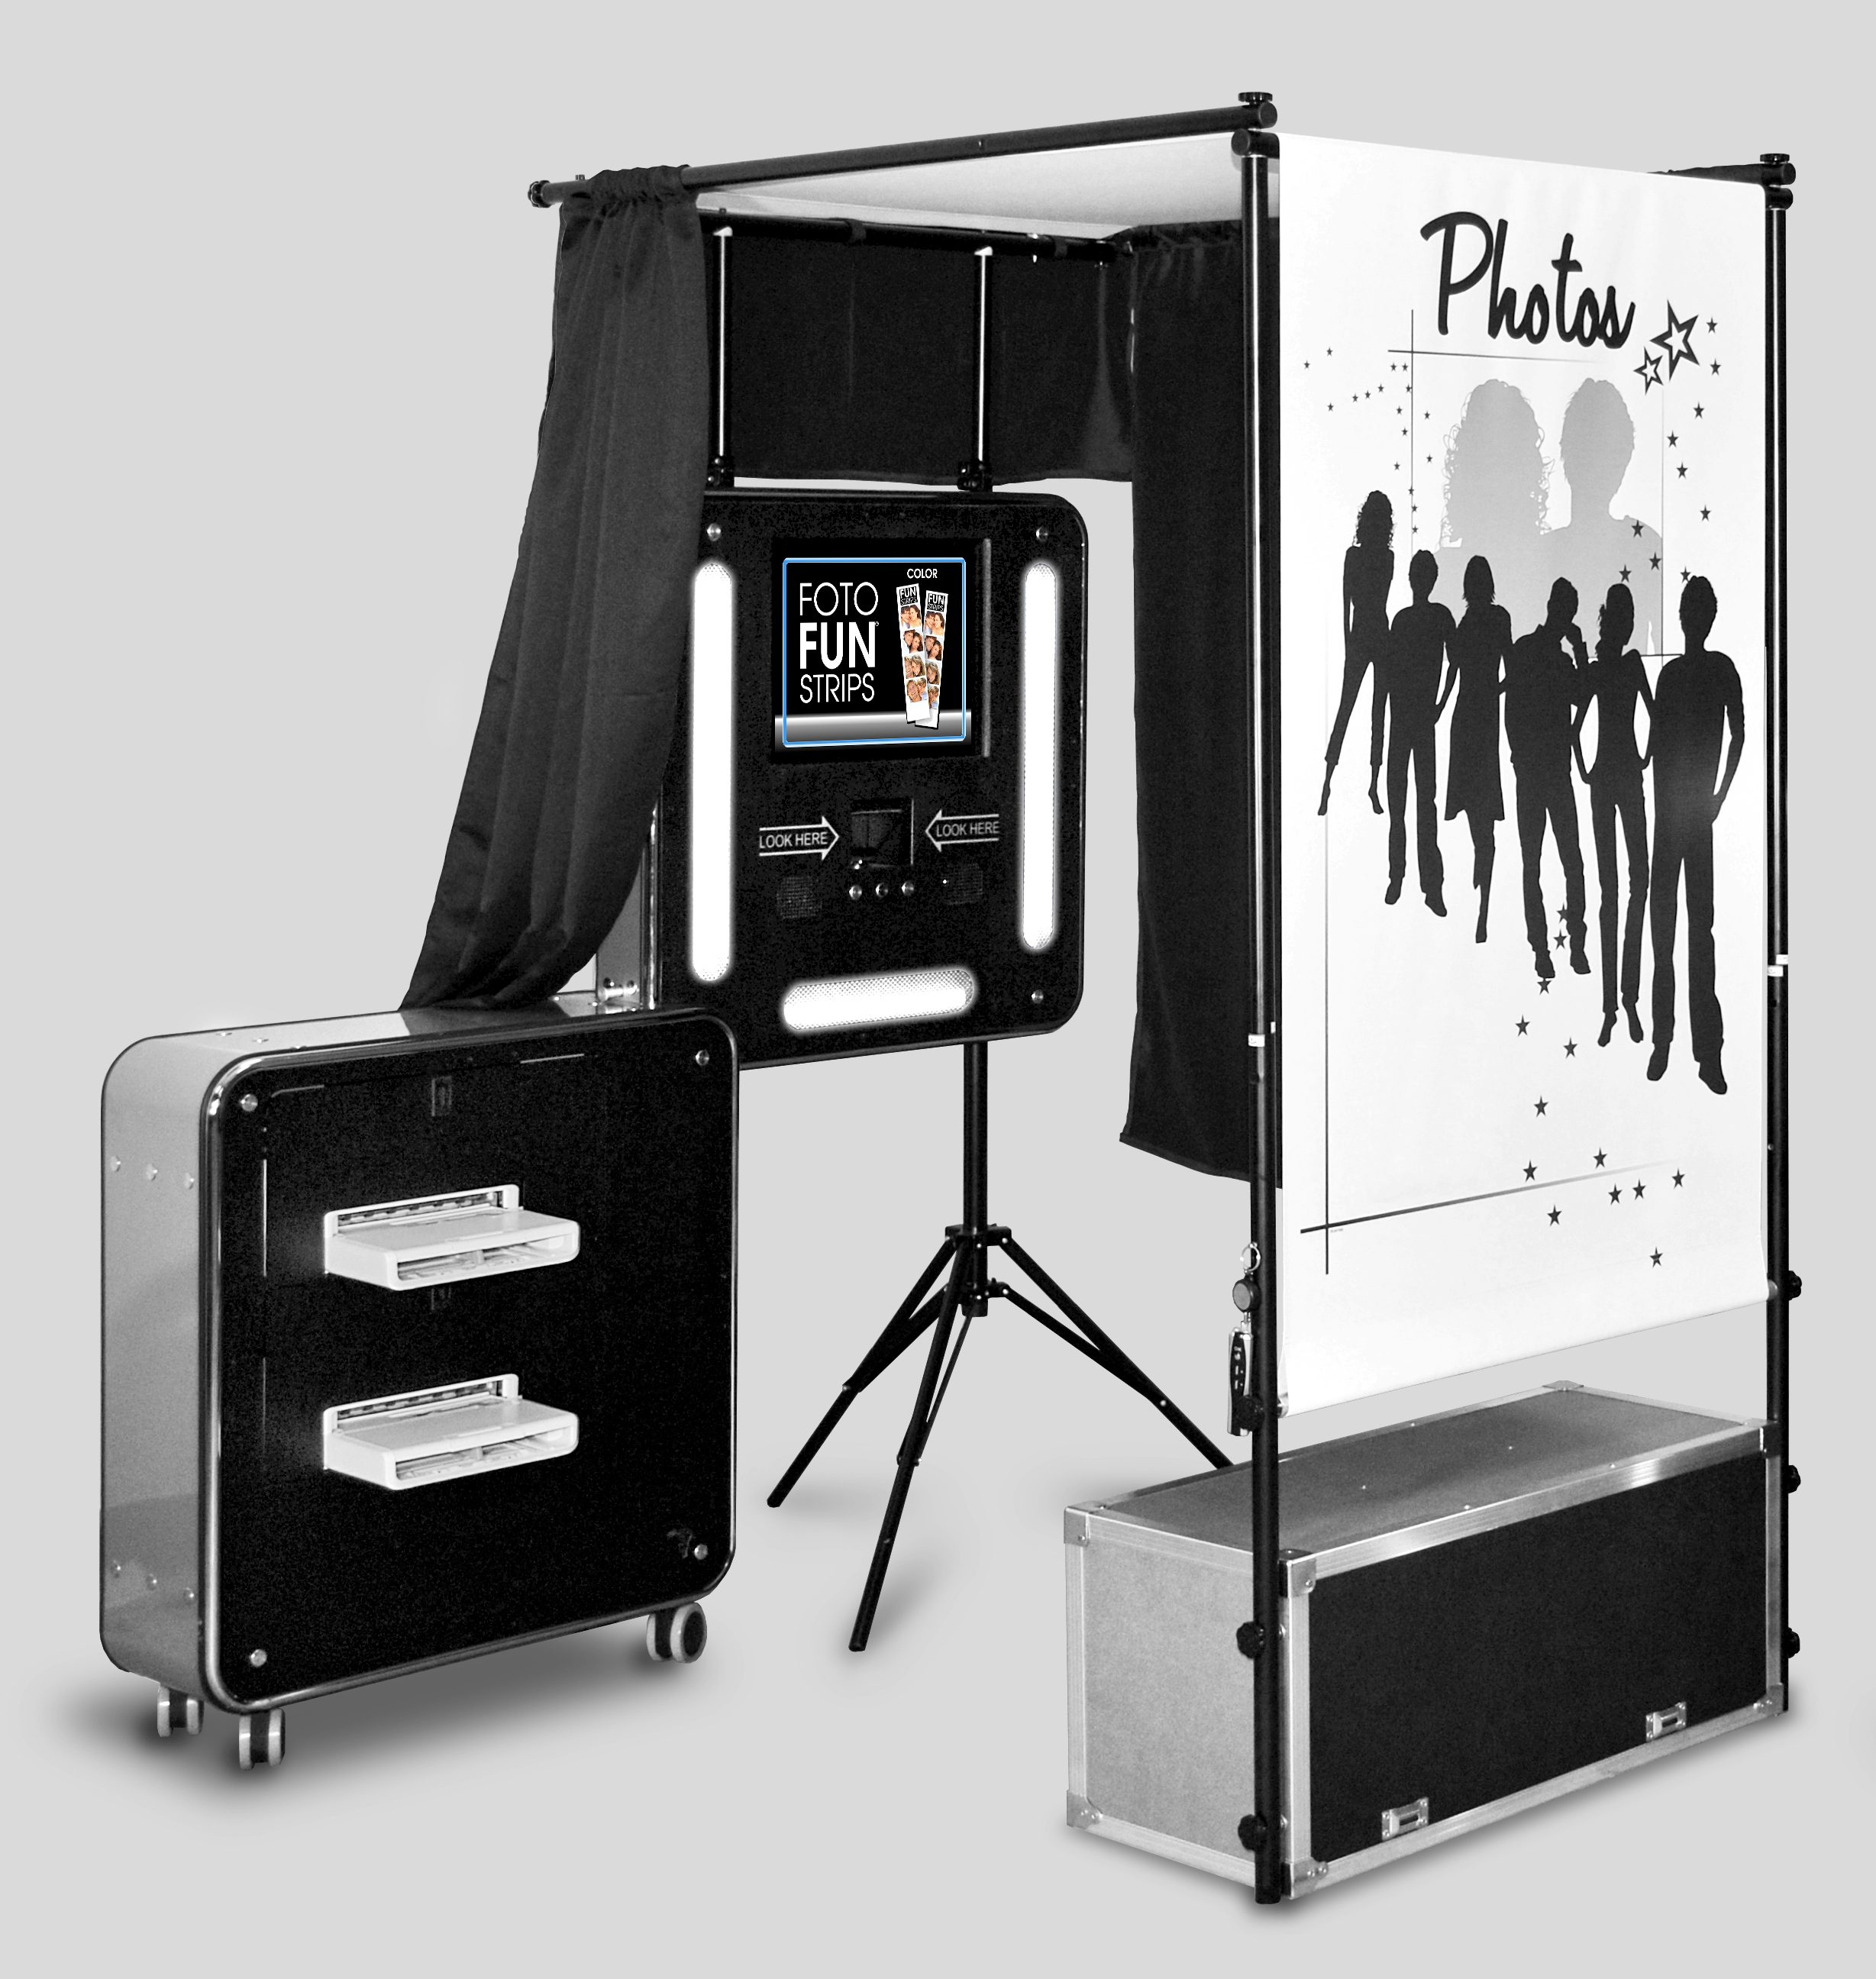 Engaged Films photo booth rental for weddings and events